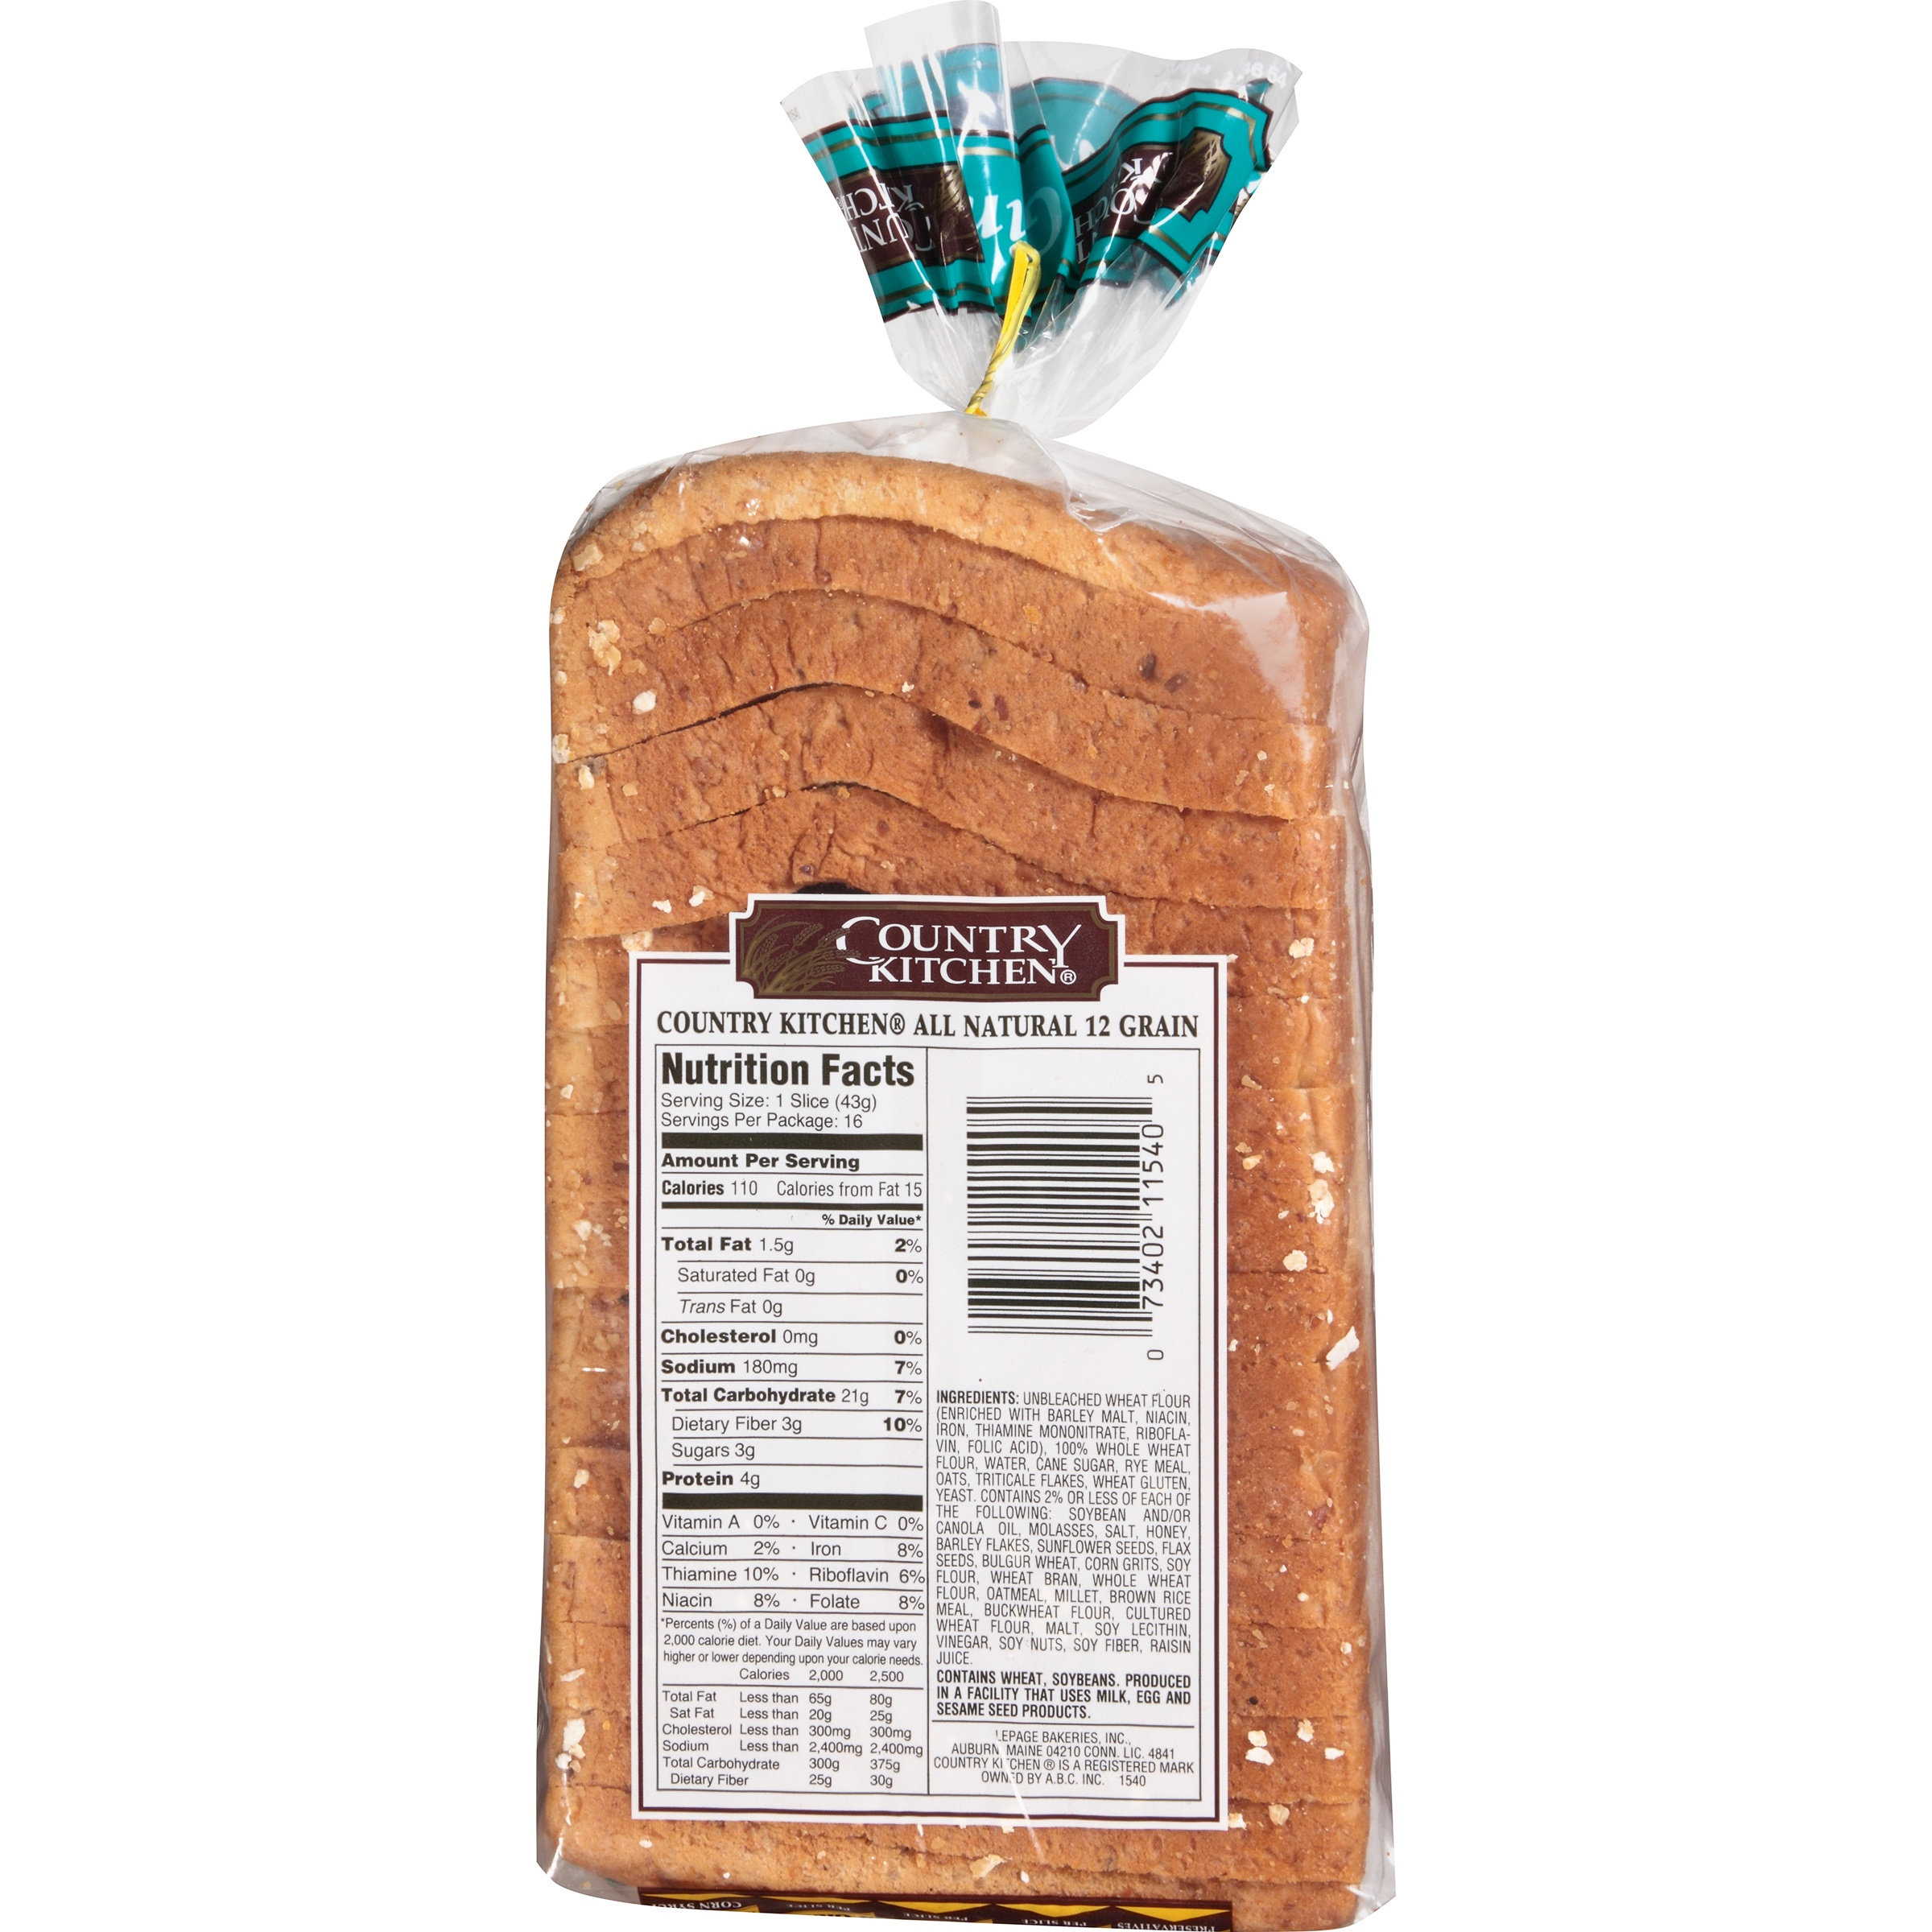 Country Kitchen All Natural Whole Grain 12 Bread 24 Oz Bag Com